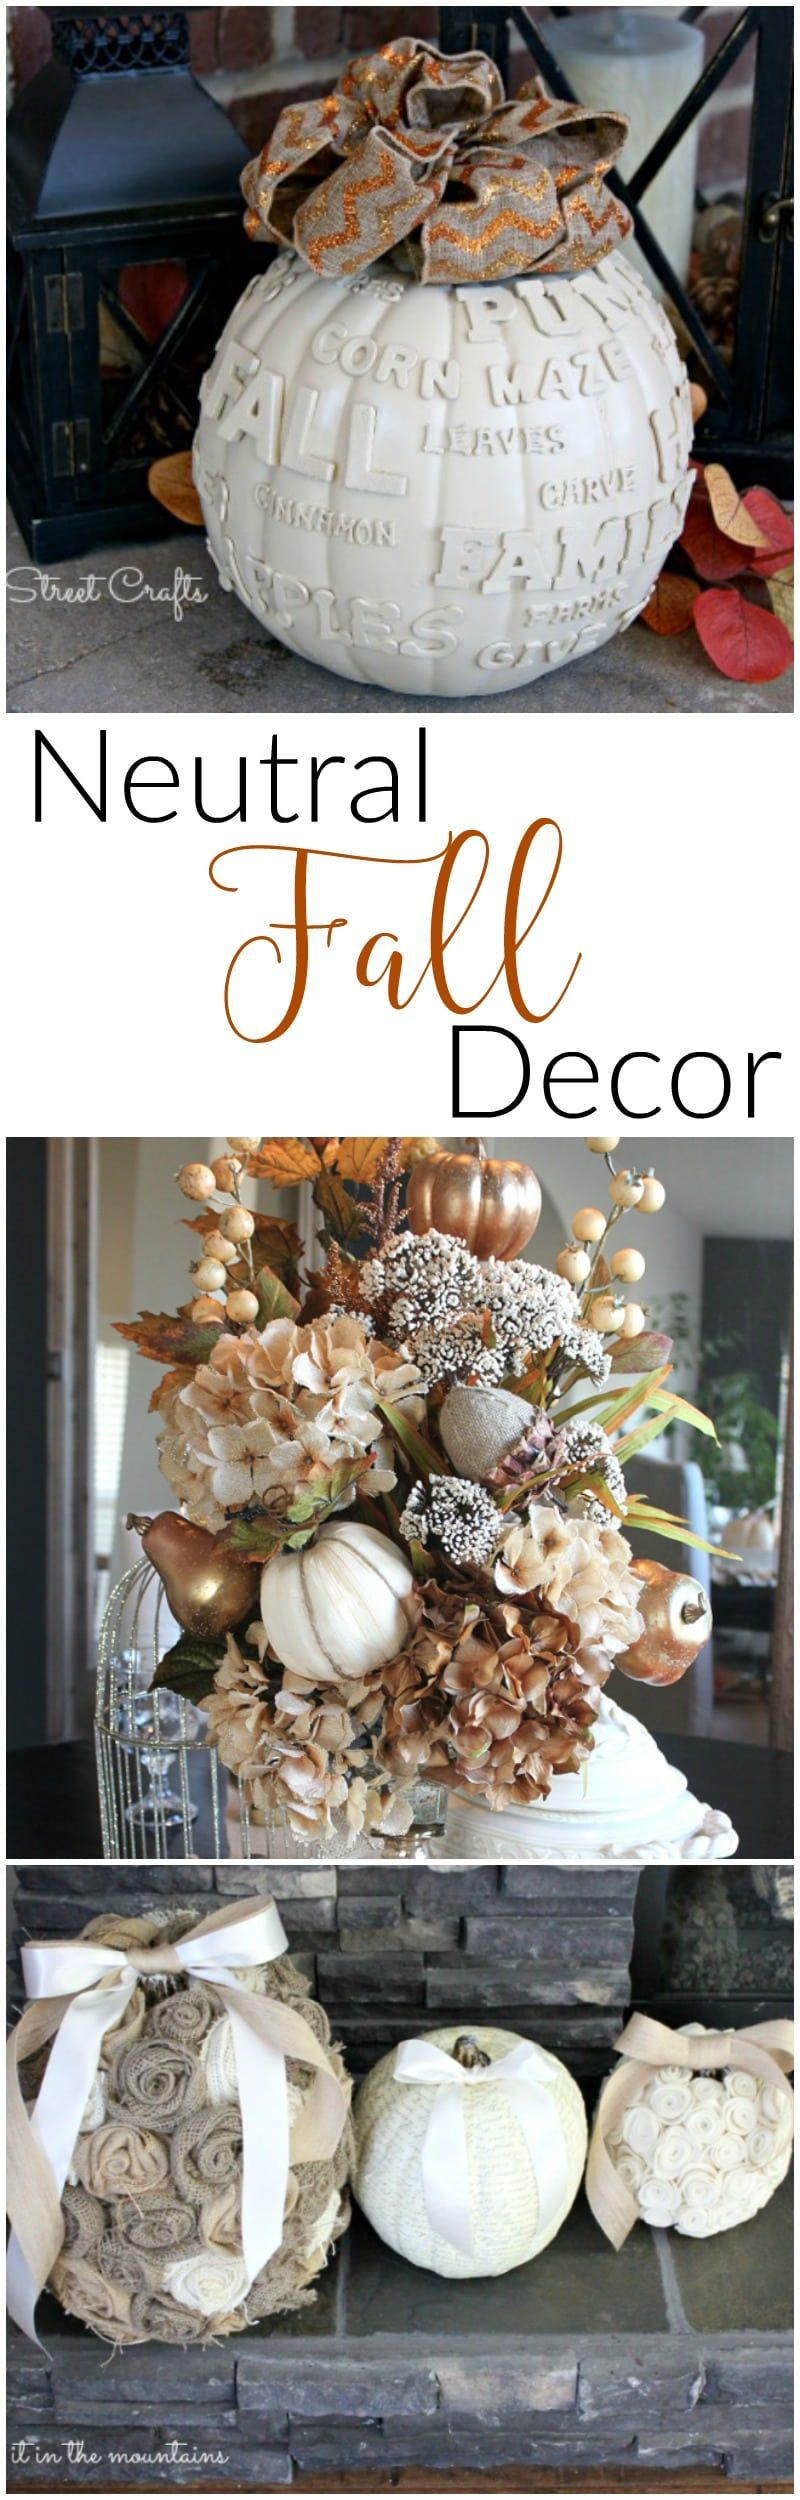 10 Neutral Fall Decor Ideas